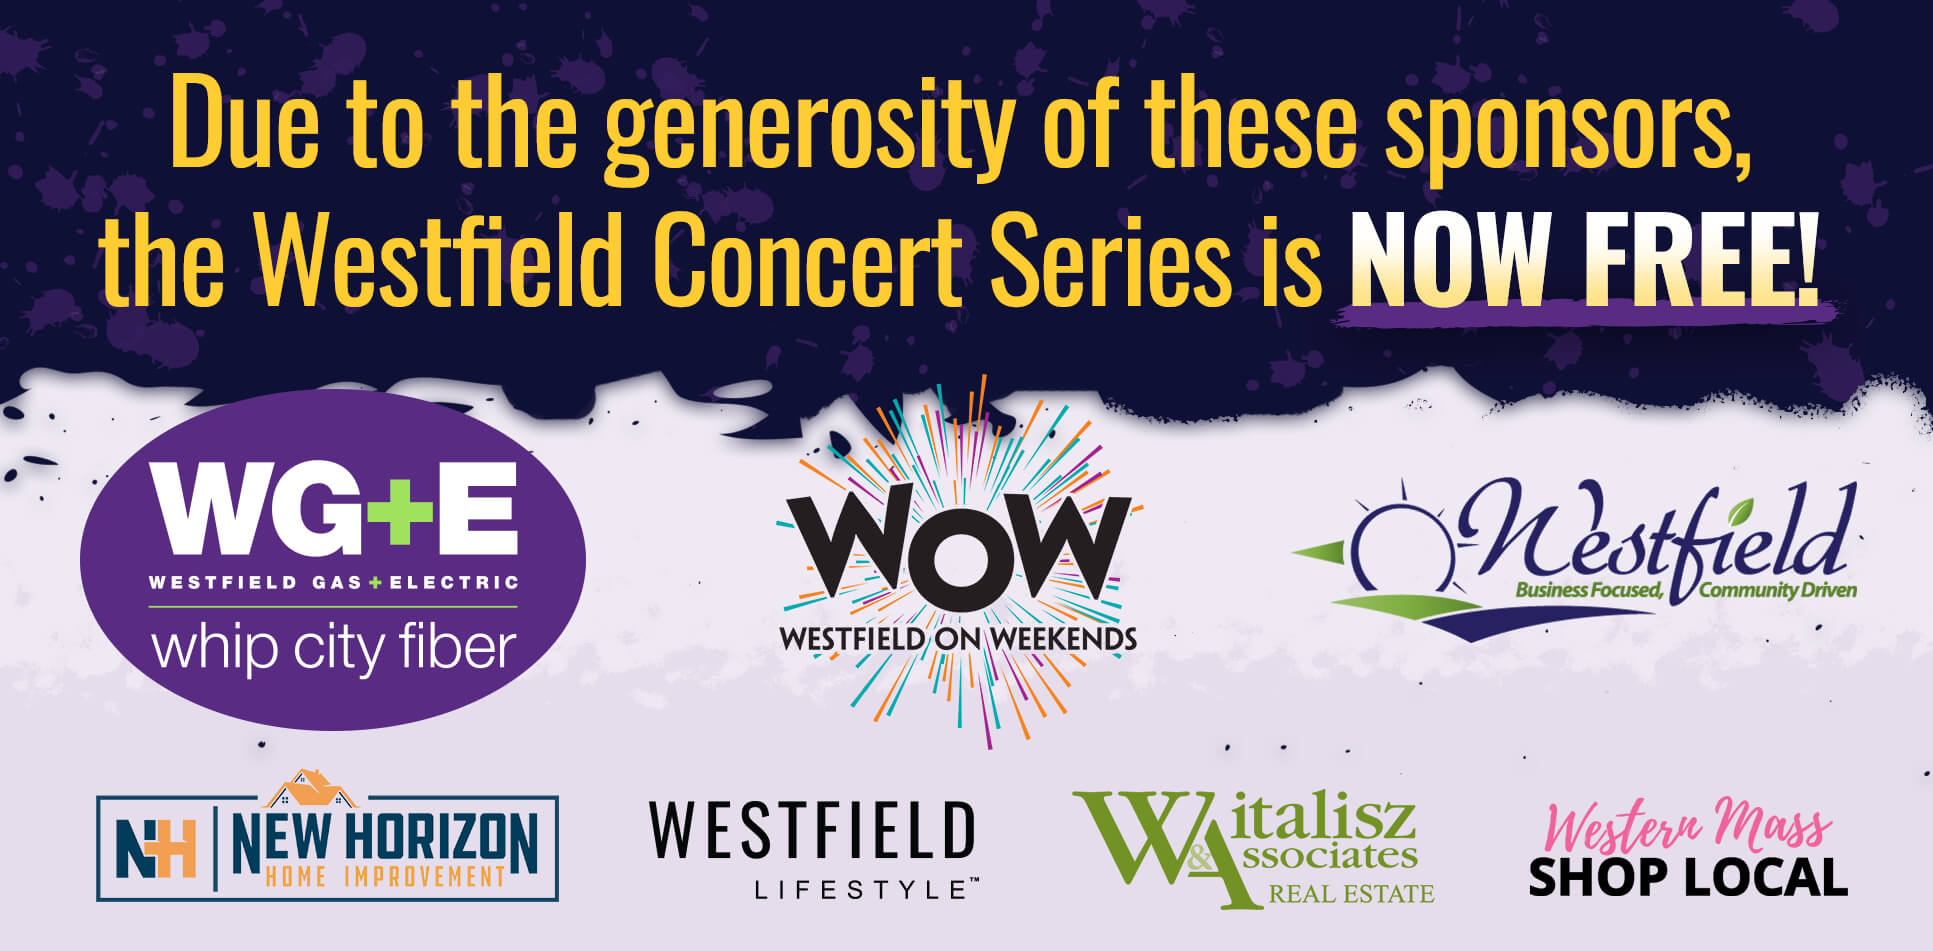 Due to the generosity of these sponsors, the Westfield Concert Series is NOW FREE!